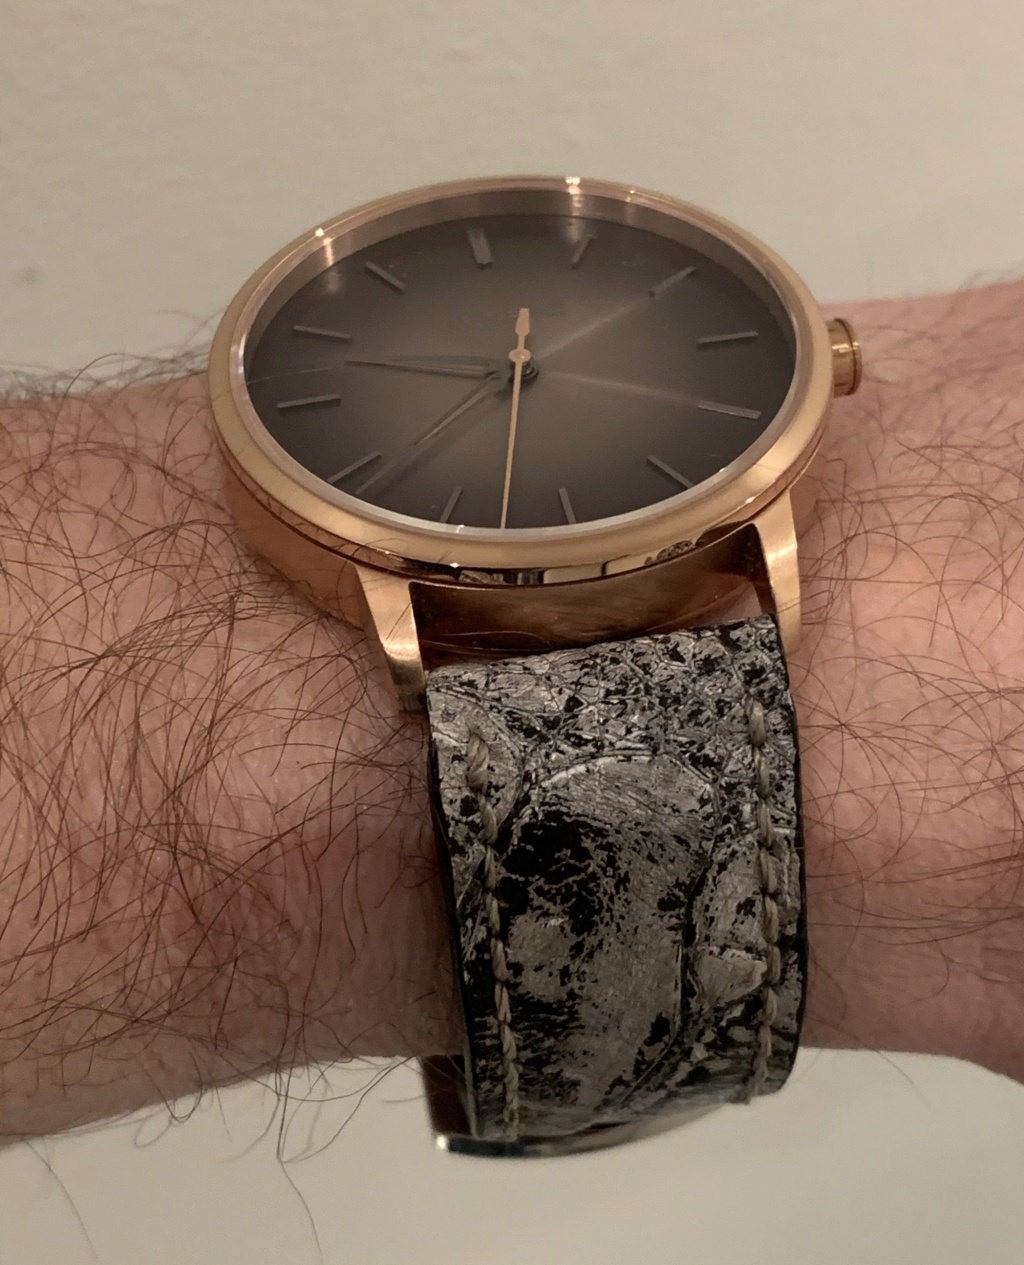 Akrone : des montres, tout simplement - Page 23 Img_0116